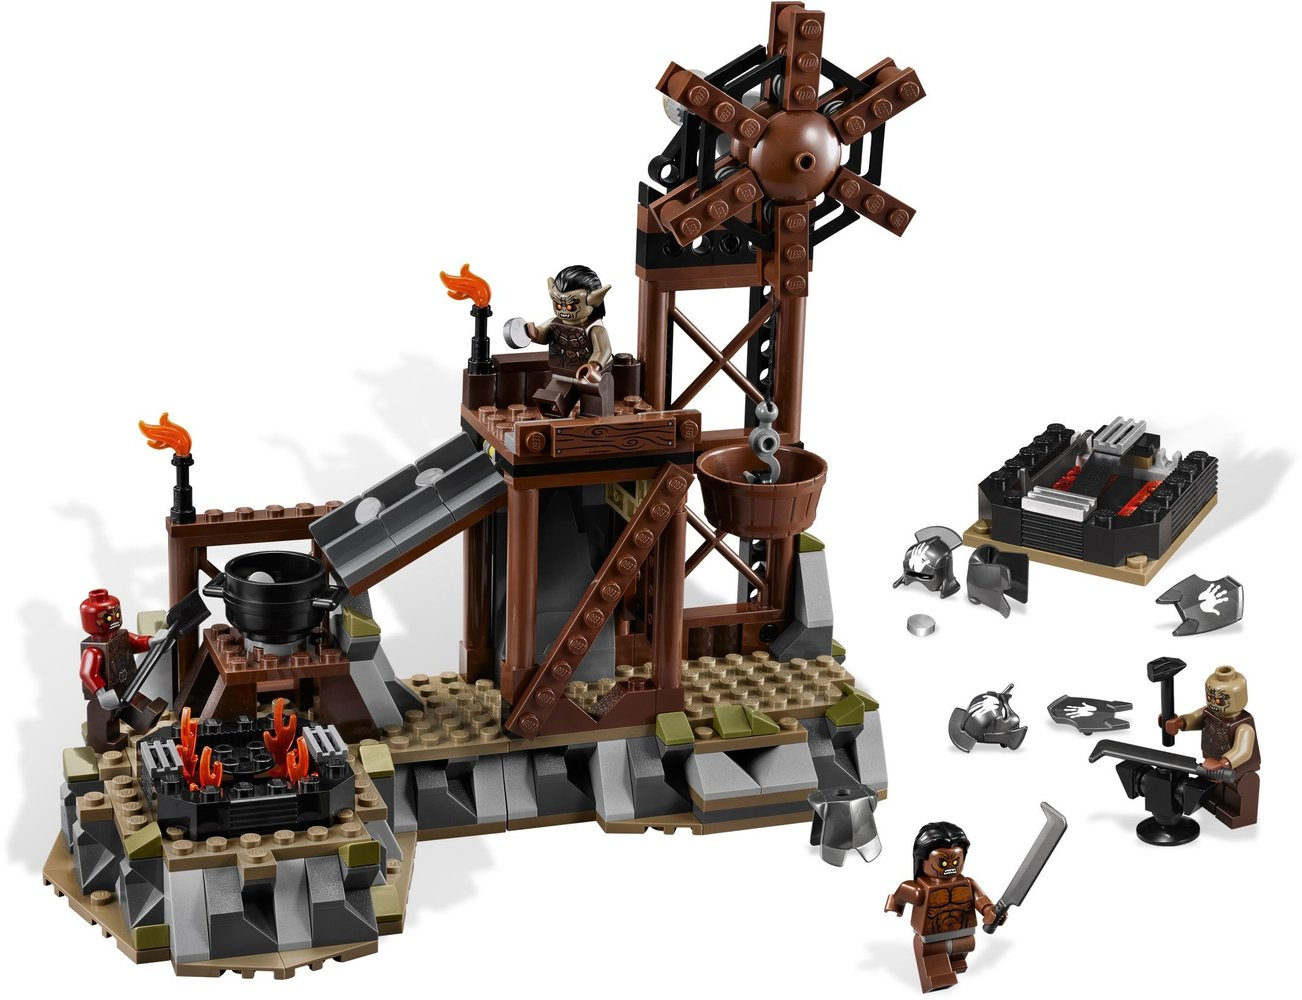 The Orc Forge